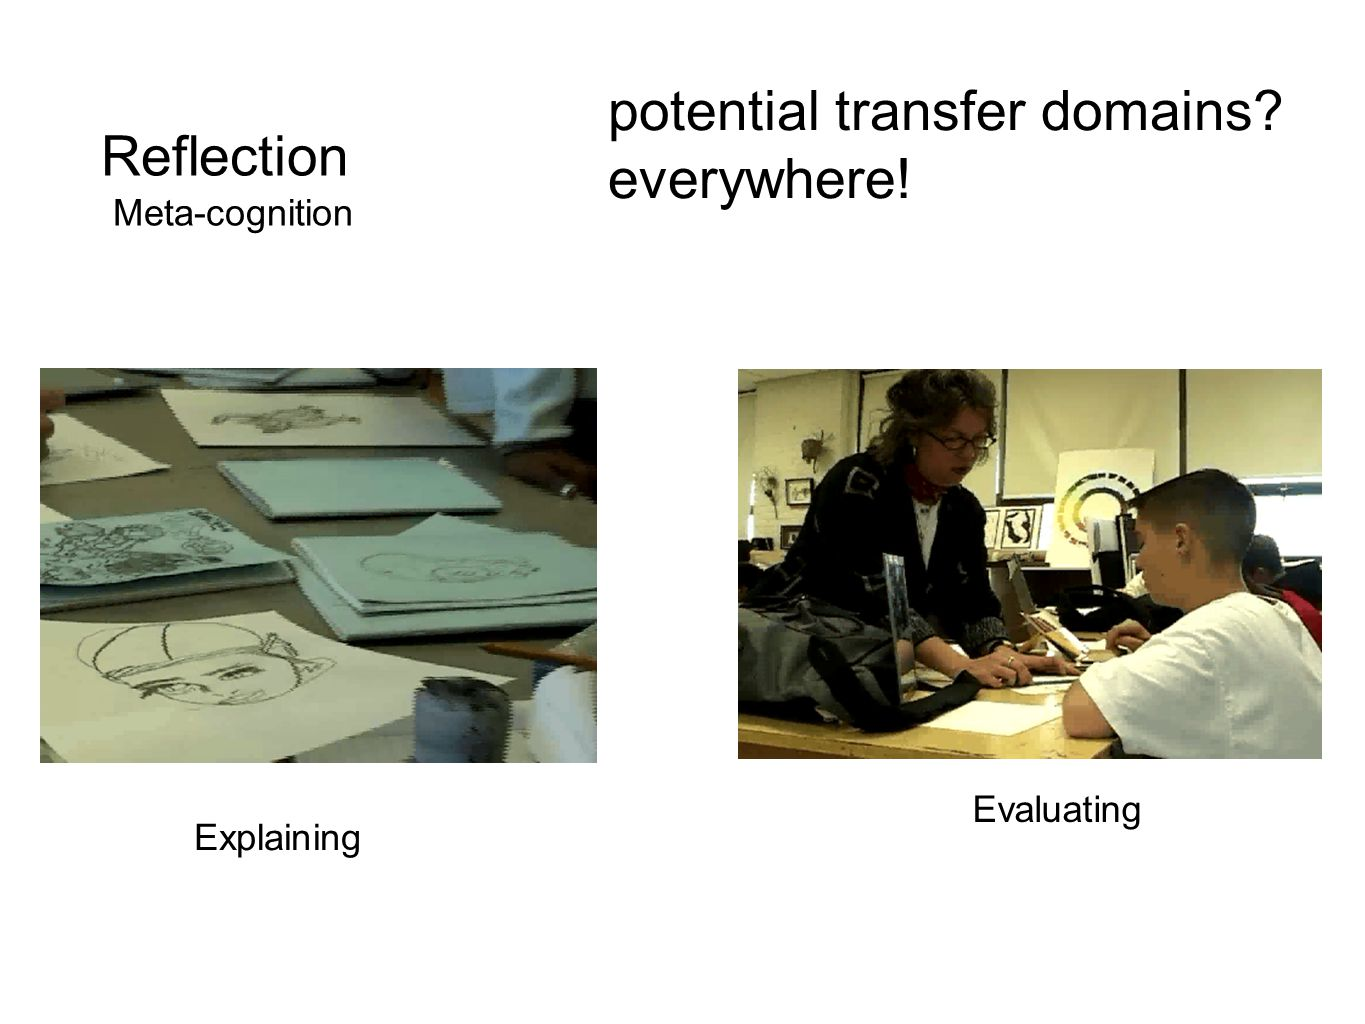 Explaining Evaluating Reflection Meta-cognition potential transfer domains everywhere!